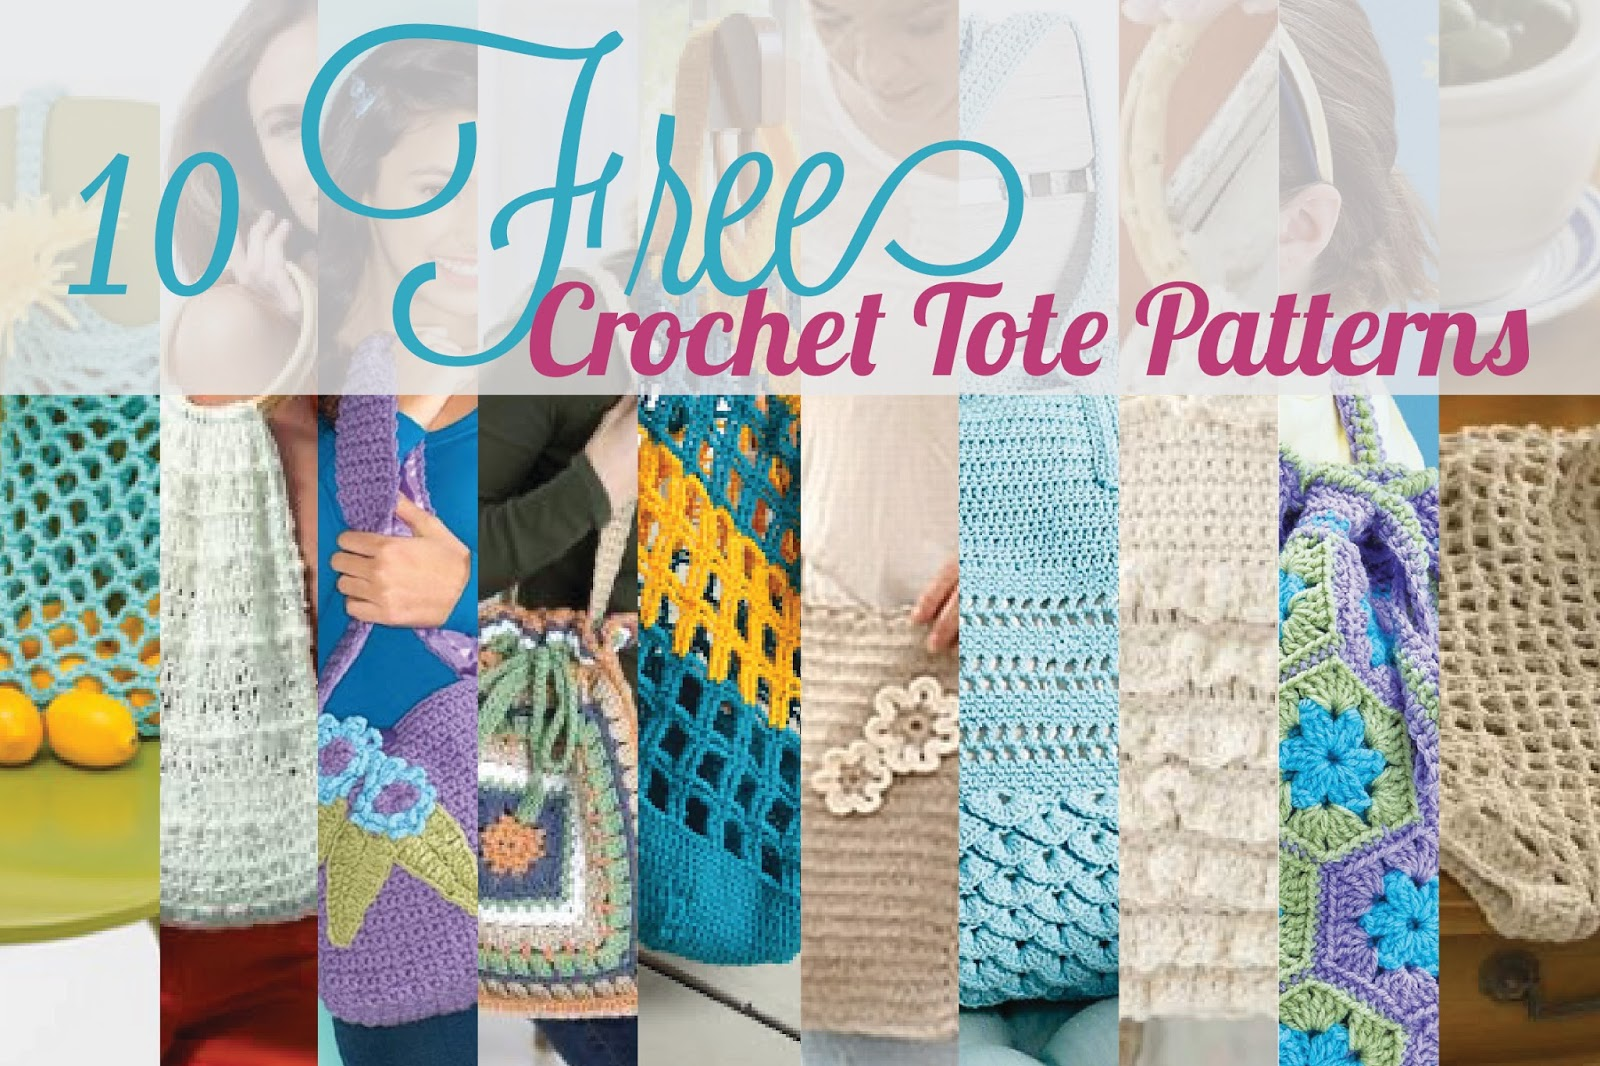 Crochet Tote Pattern : Cottontail Crochet: 10 Free Crochet Tote Patterns